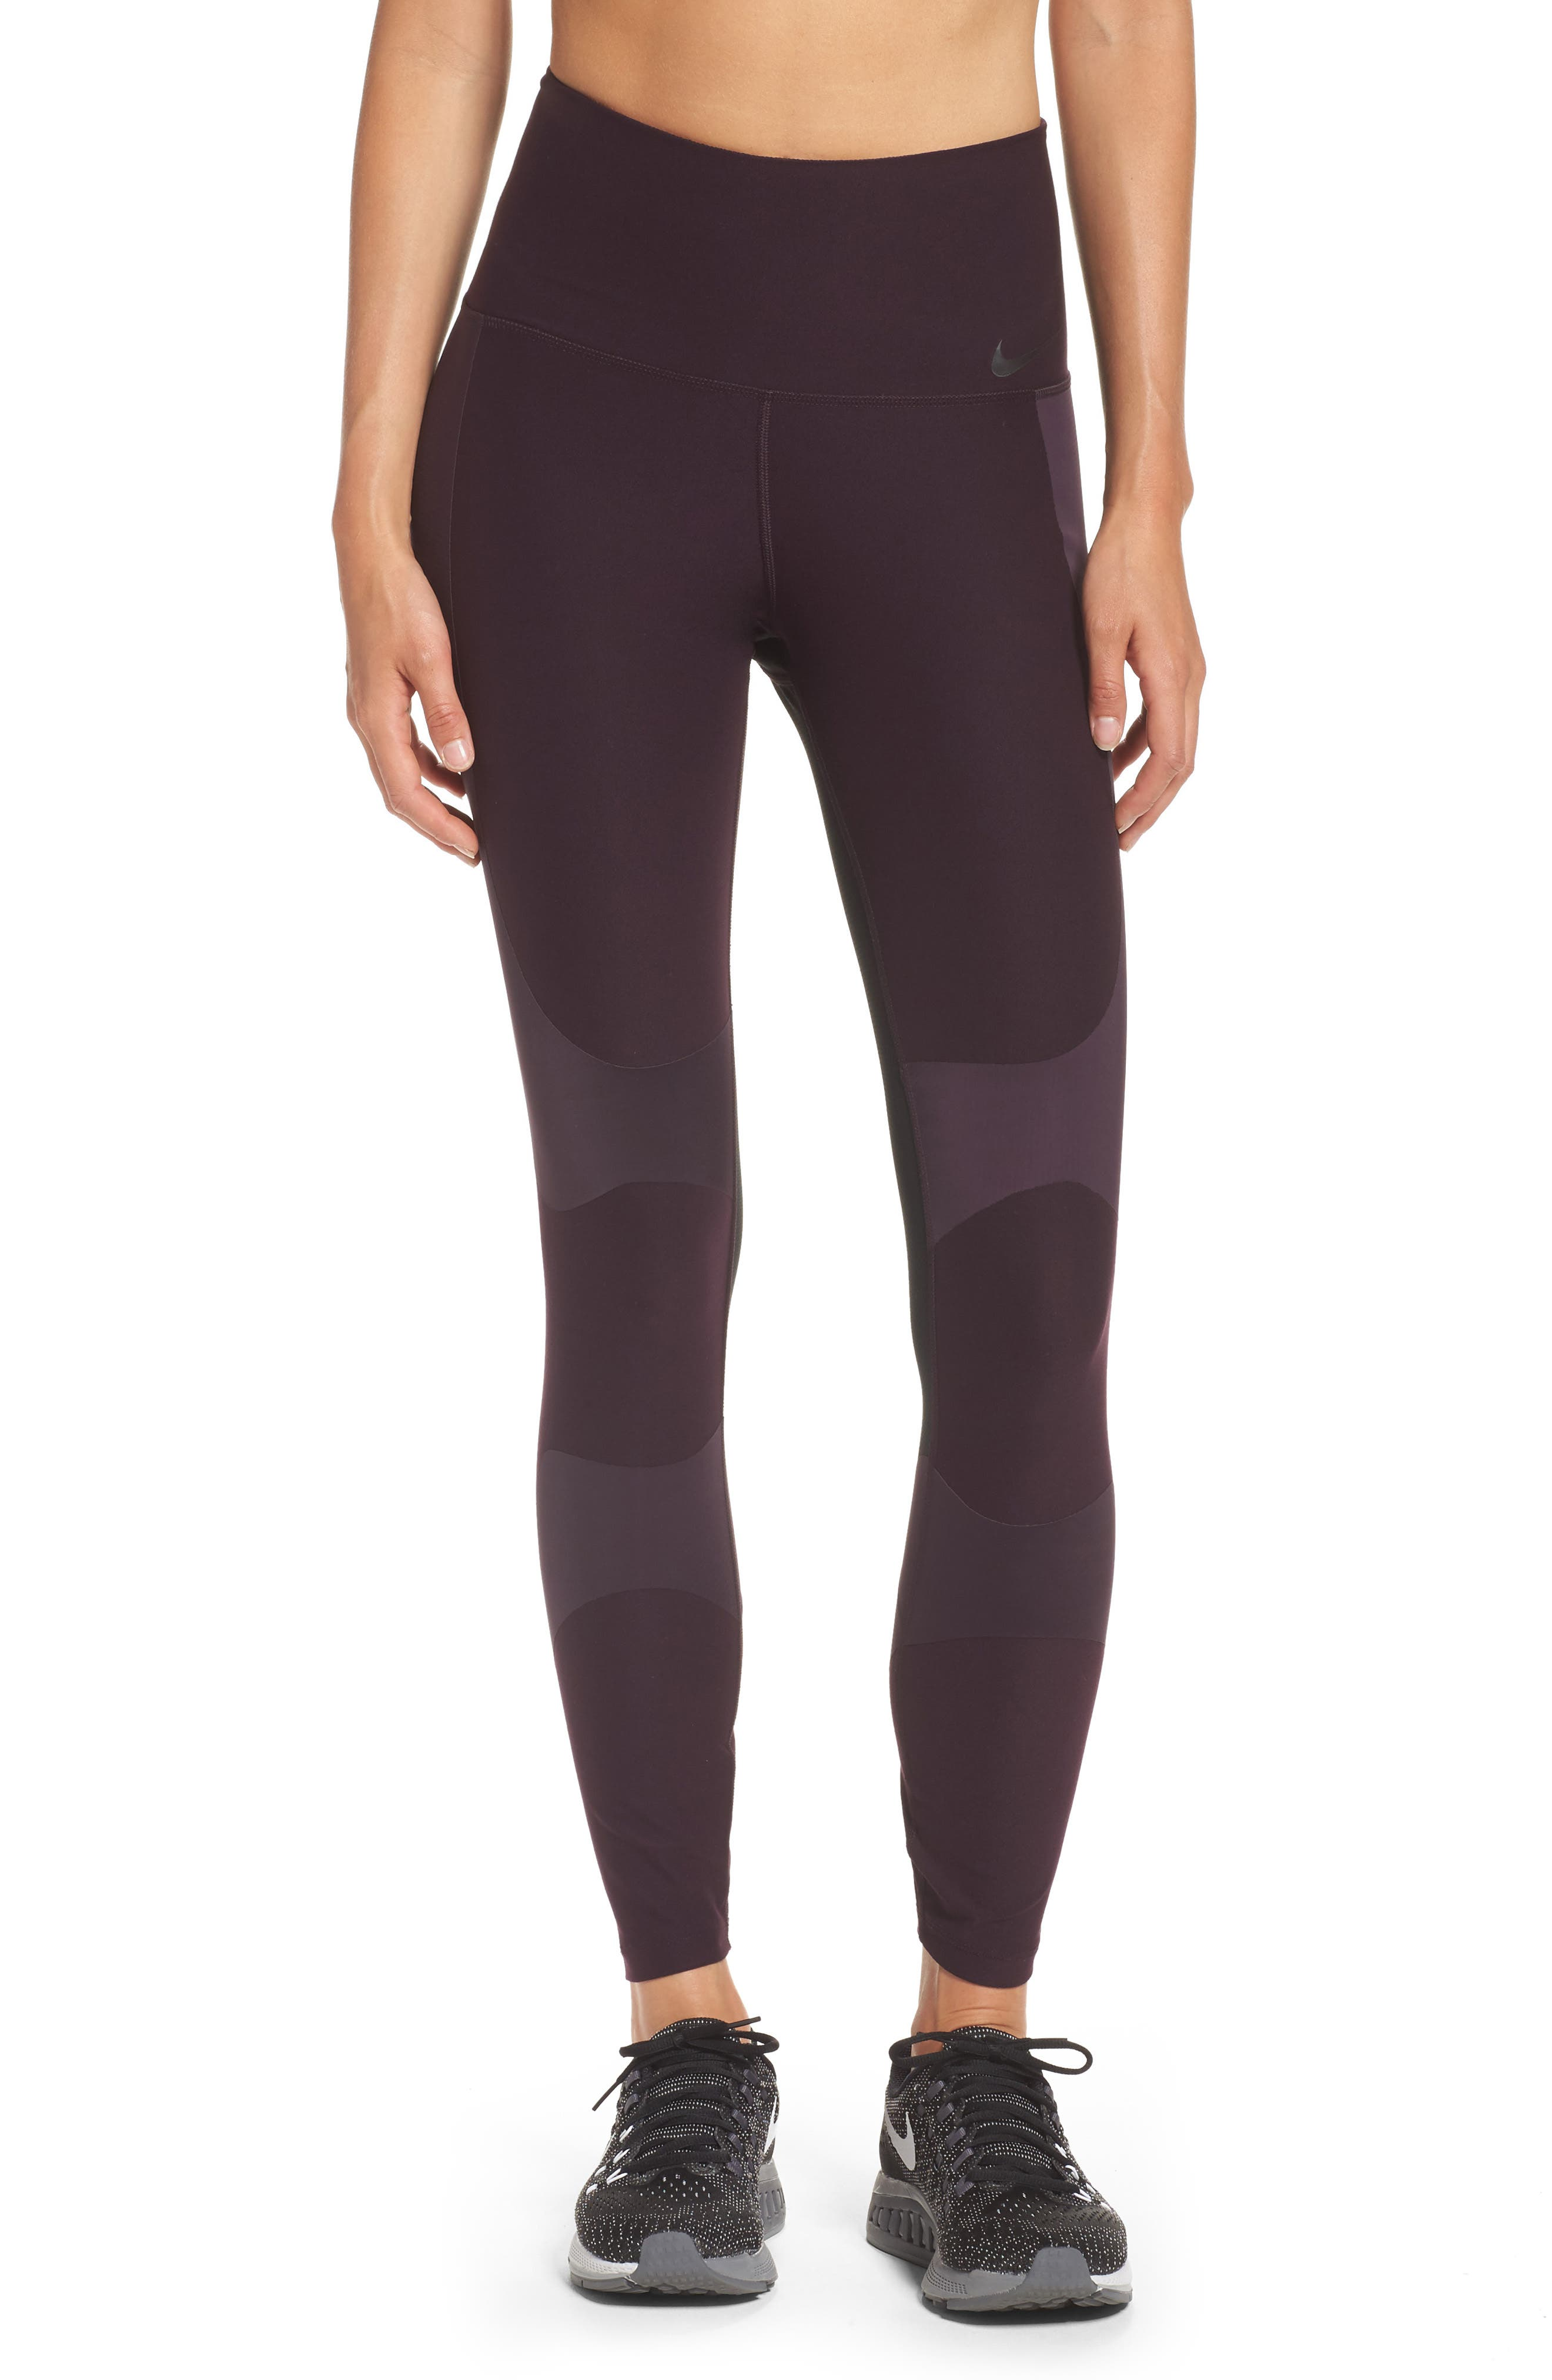 Nike Power Legend Training Tights